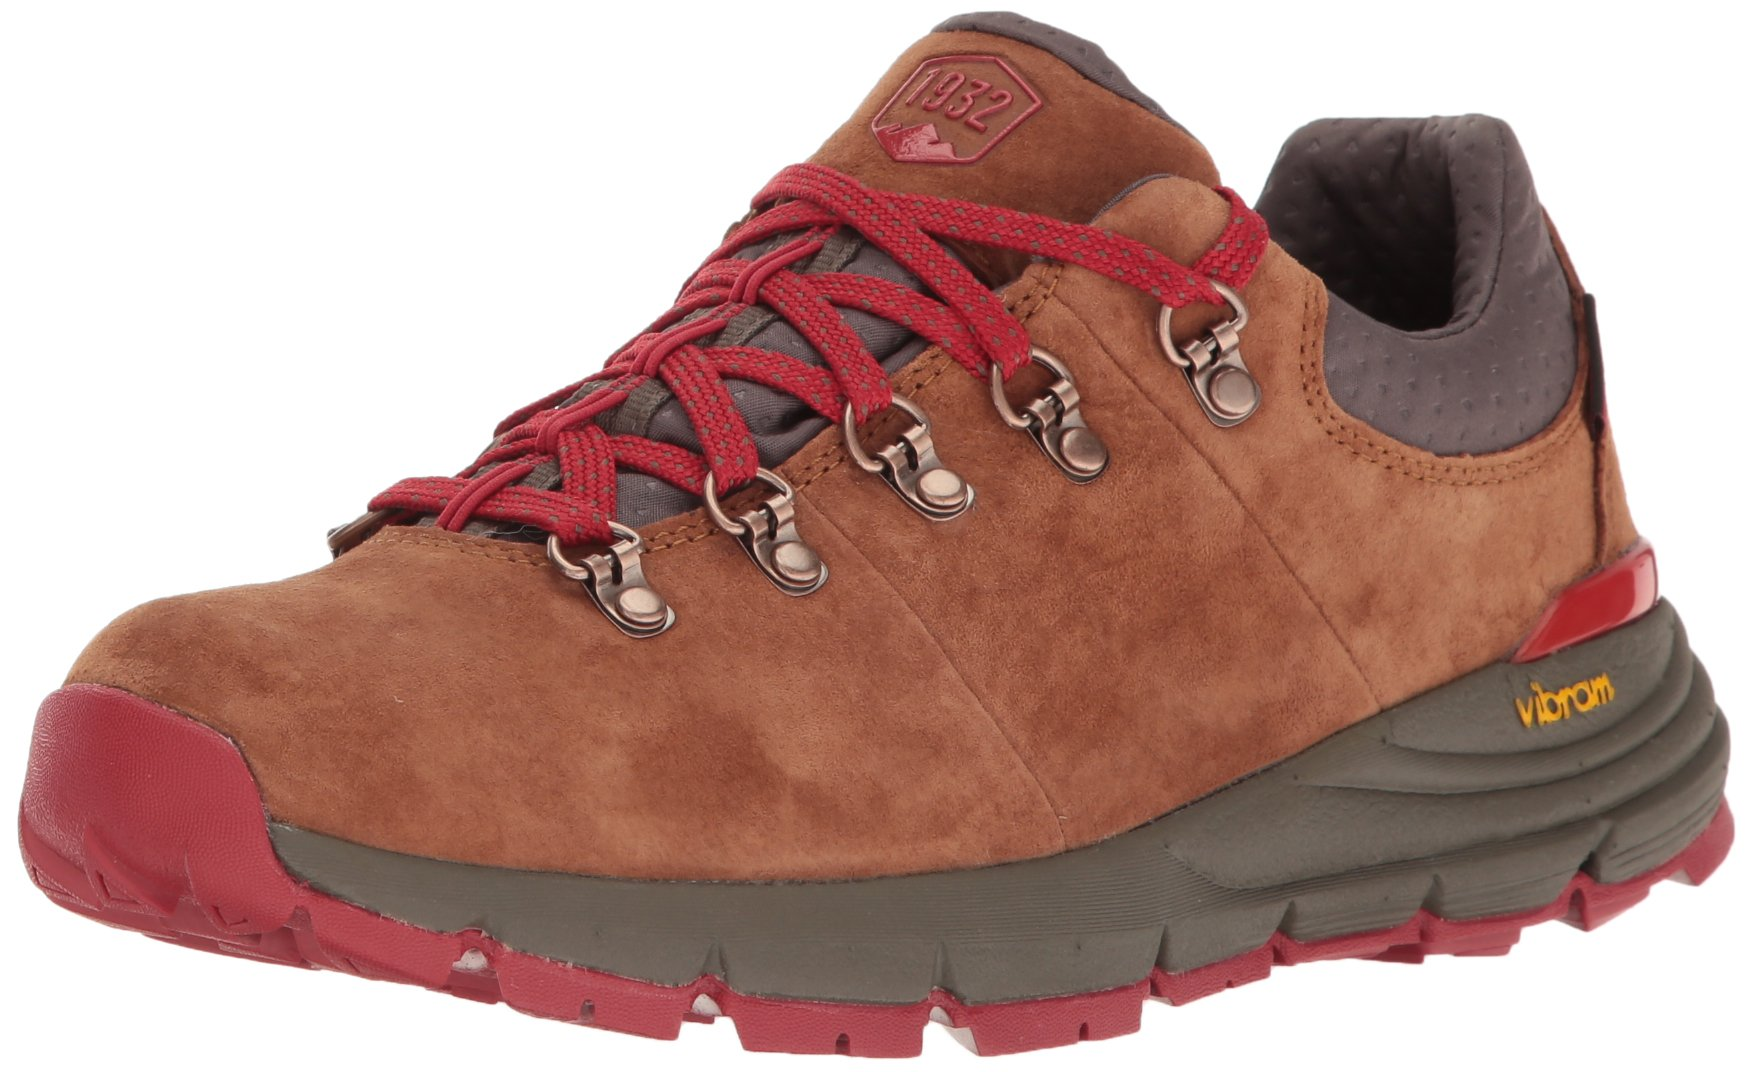 Danner Women's Mountain 600 Low 3'' Hiking Boot, Brown/Red, 6.5 M US